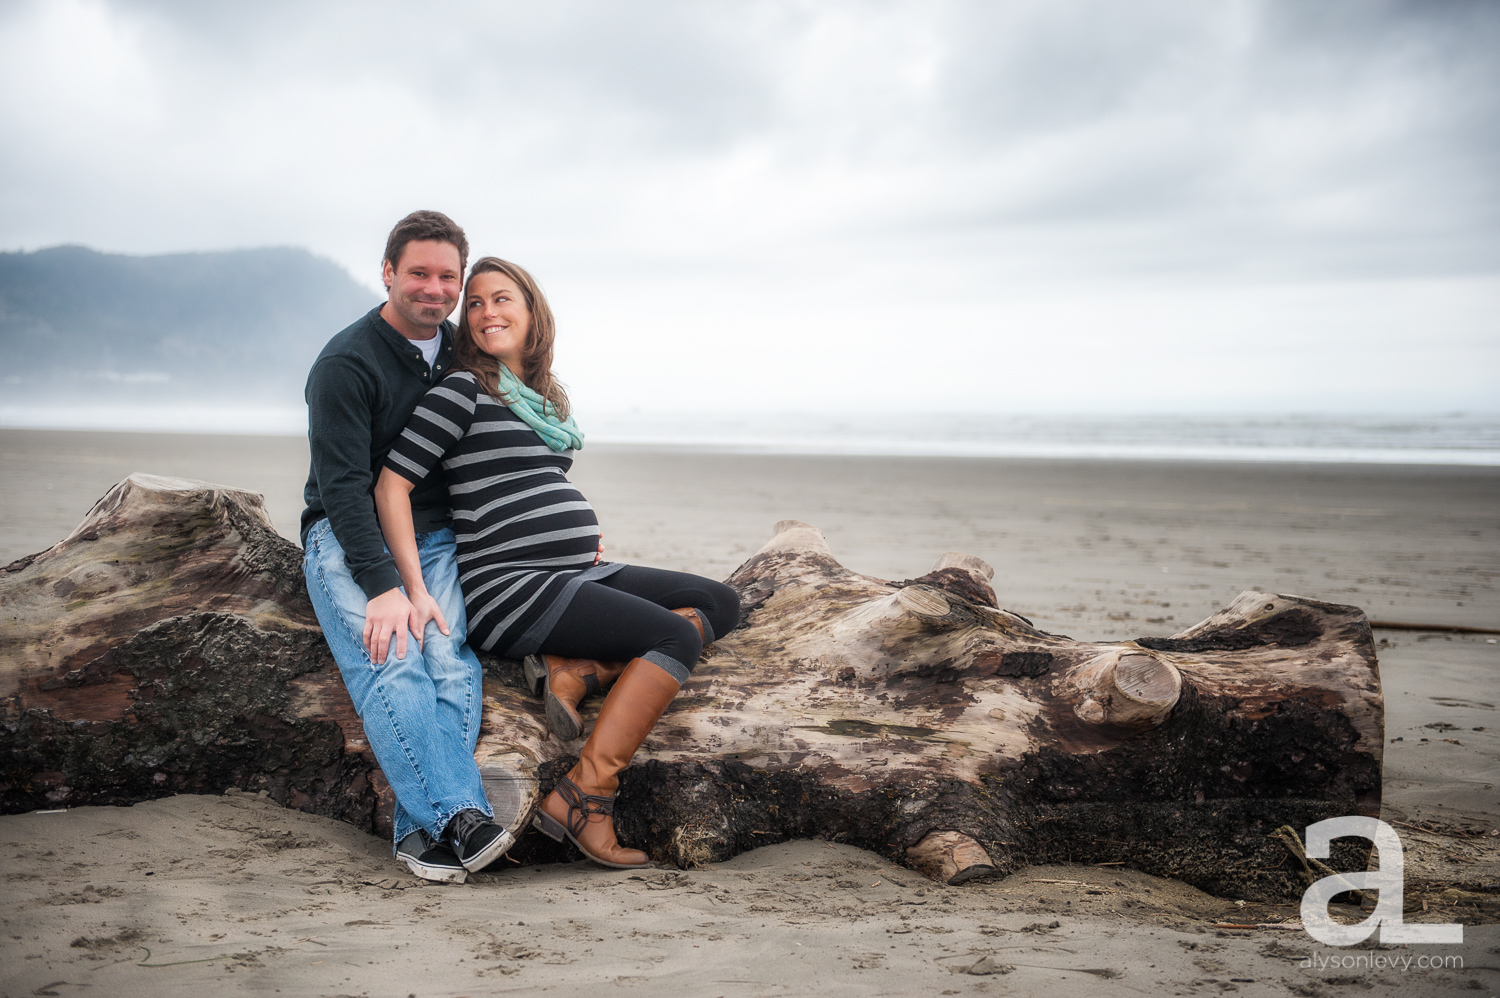 Oregon-Coast-Maternity-Photography-003.jpg